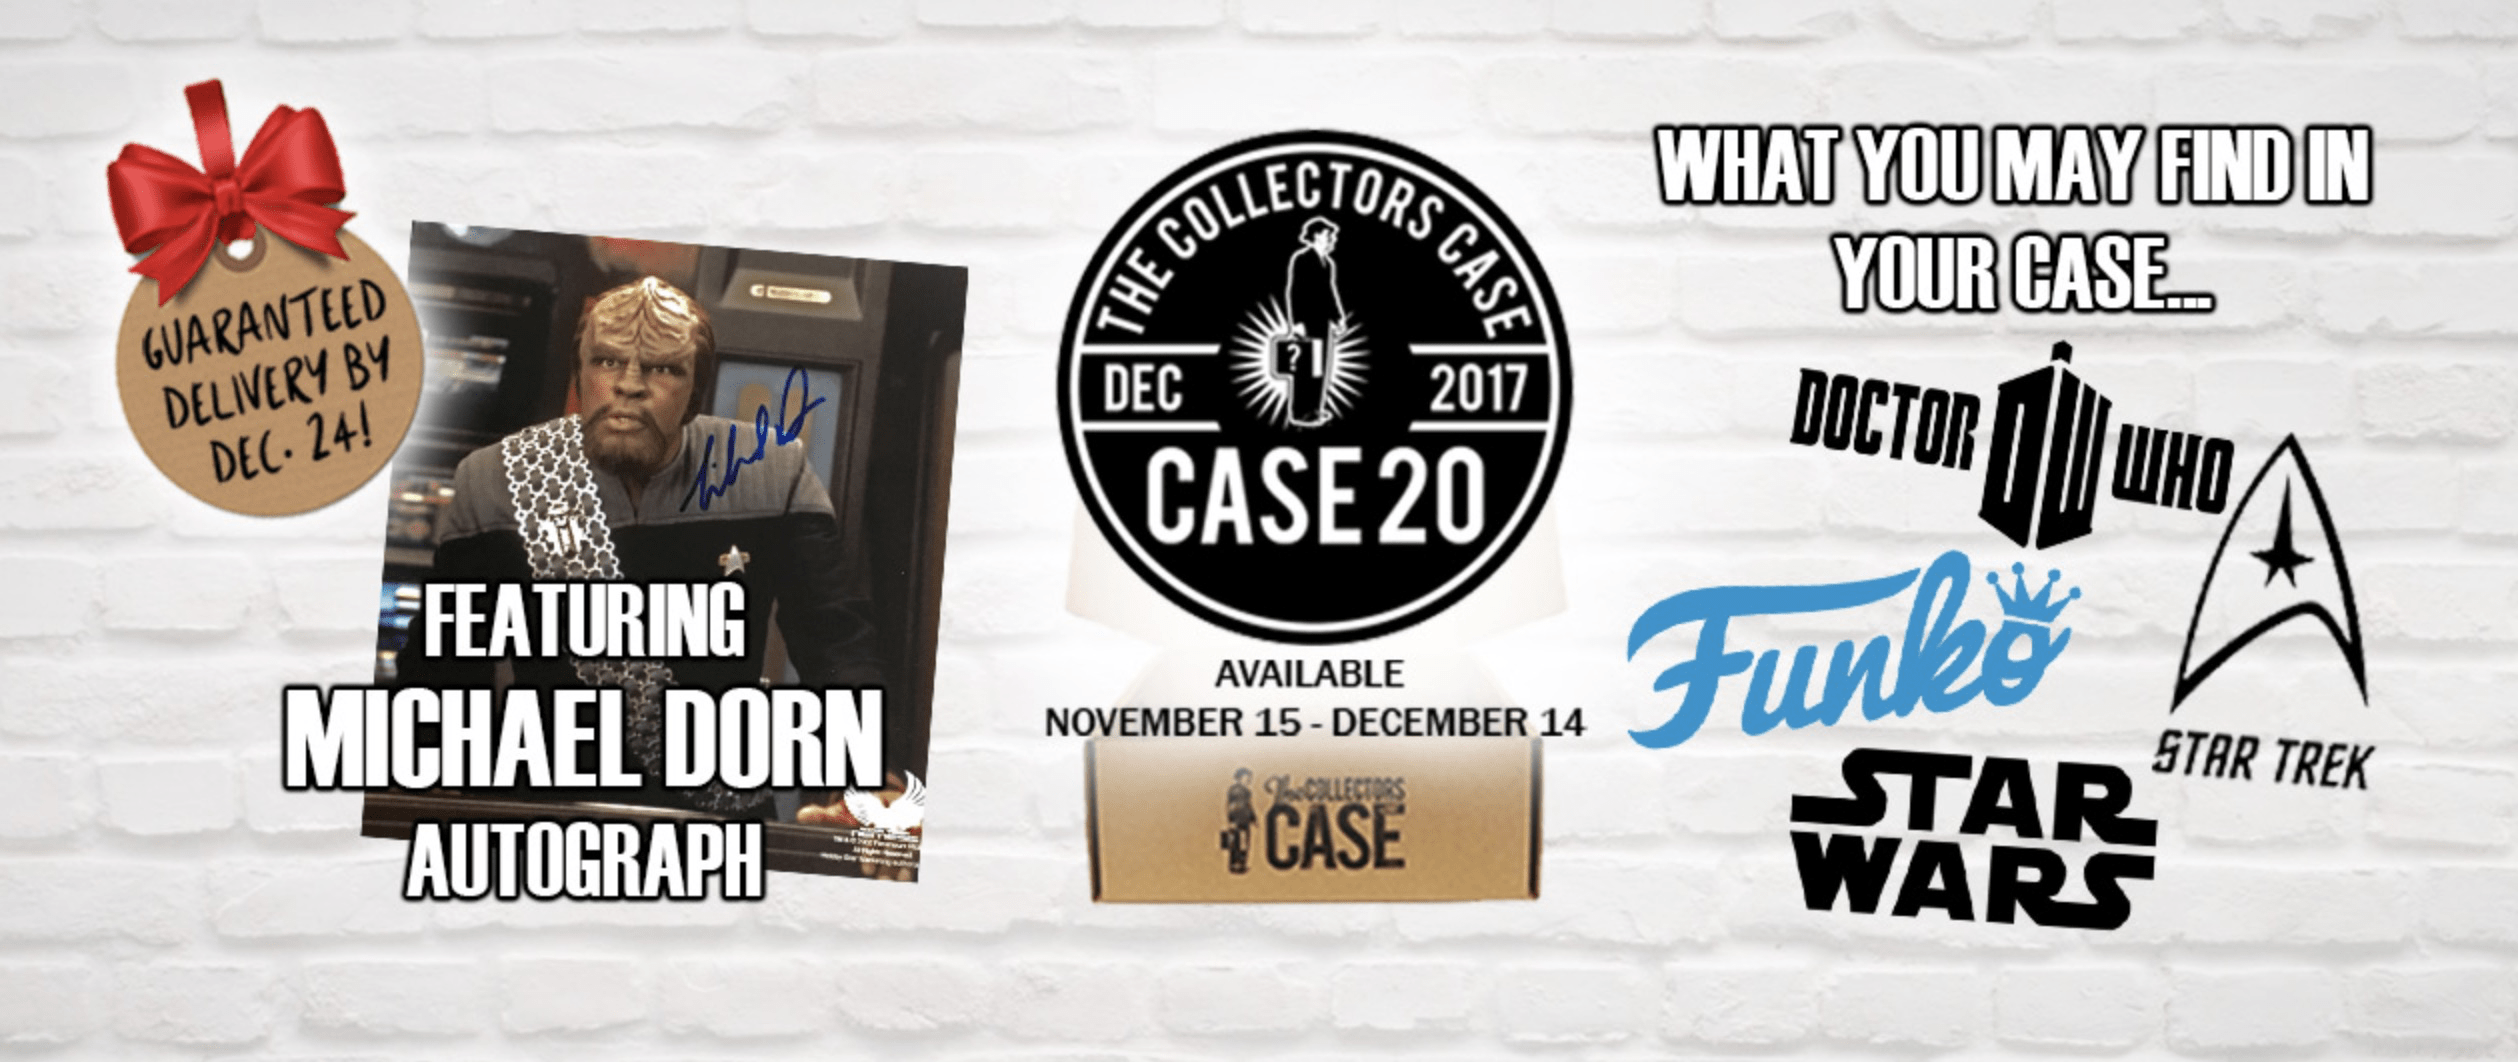 The Collectors Case Cyber Monday Coupon: $5 Off Coupon!